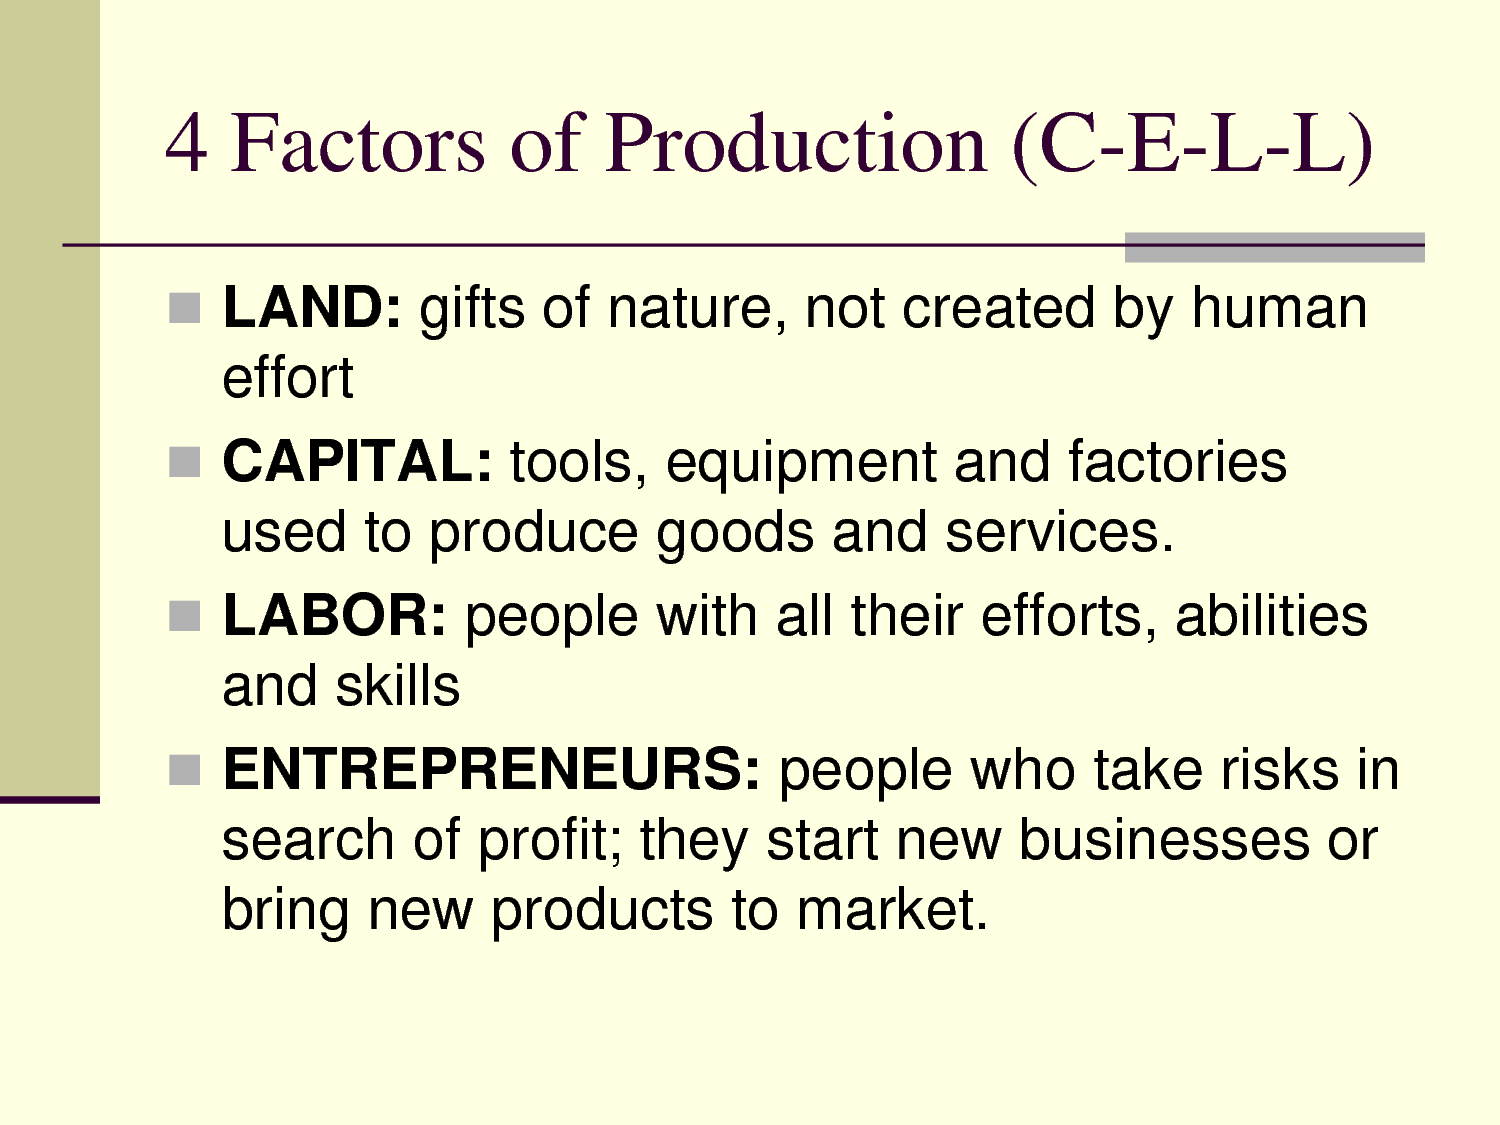 an overview of production factors in companies The immediate objective of the report is to provide an overview on waste factors, their derivation and application and the experiences made, based on reports and literature available.